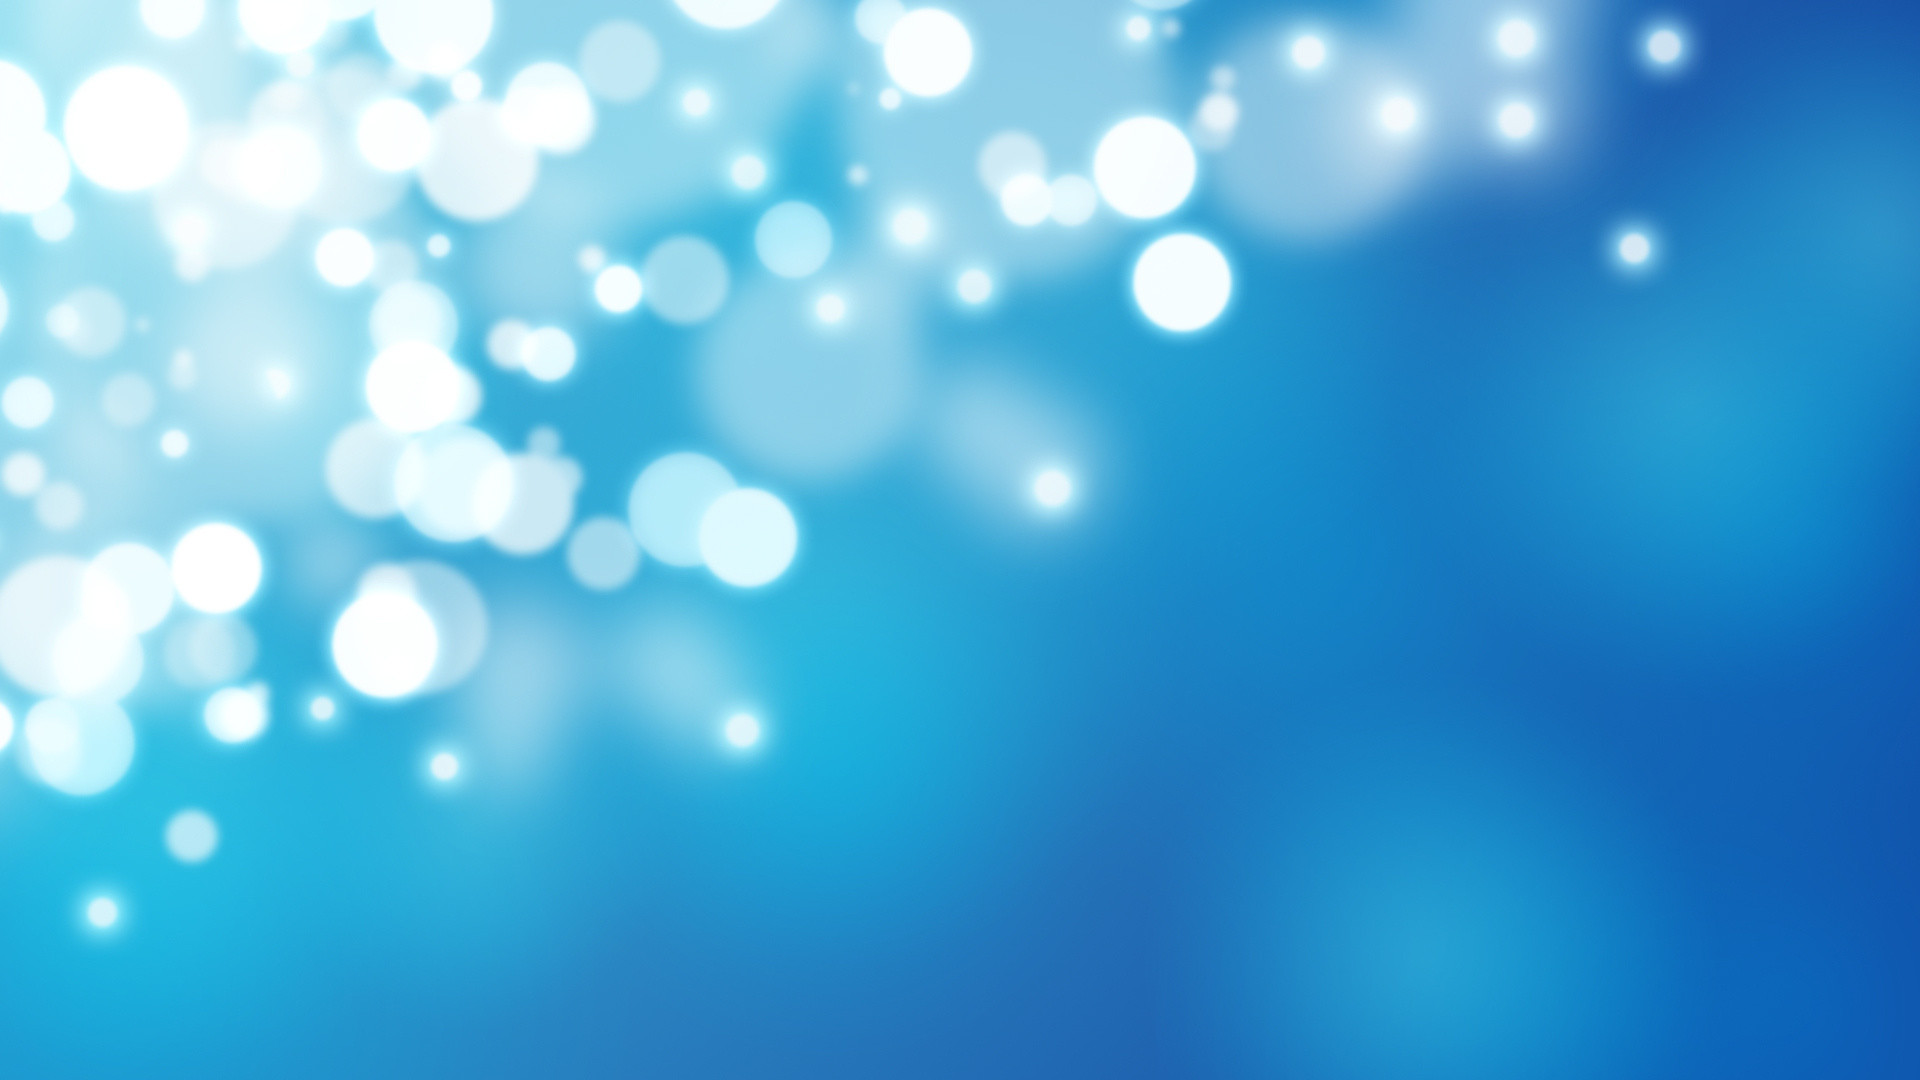 Abstract Light Background 41. Download Full Size File